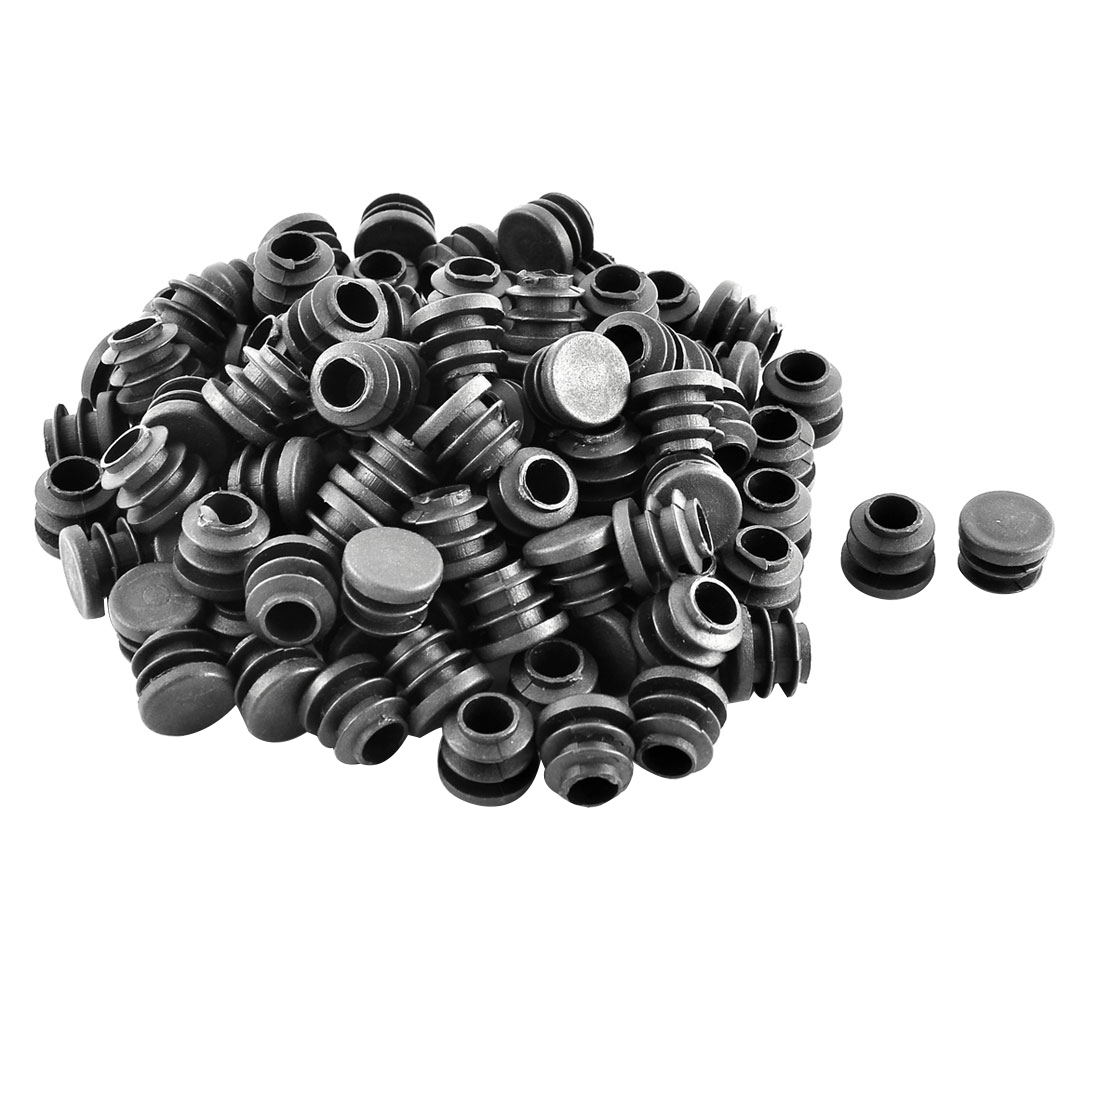 Plastic Round Ribbed Tube Inserts End Blanking Caps Black 16mm Diameter 100 Pcs